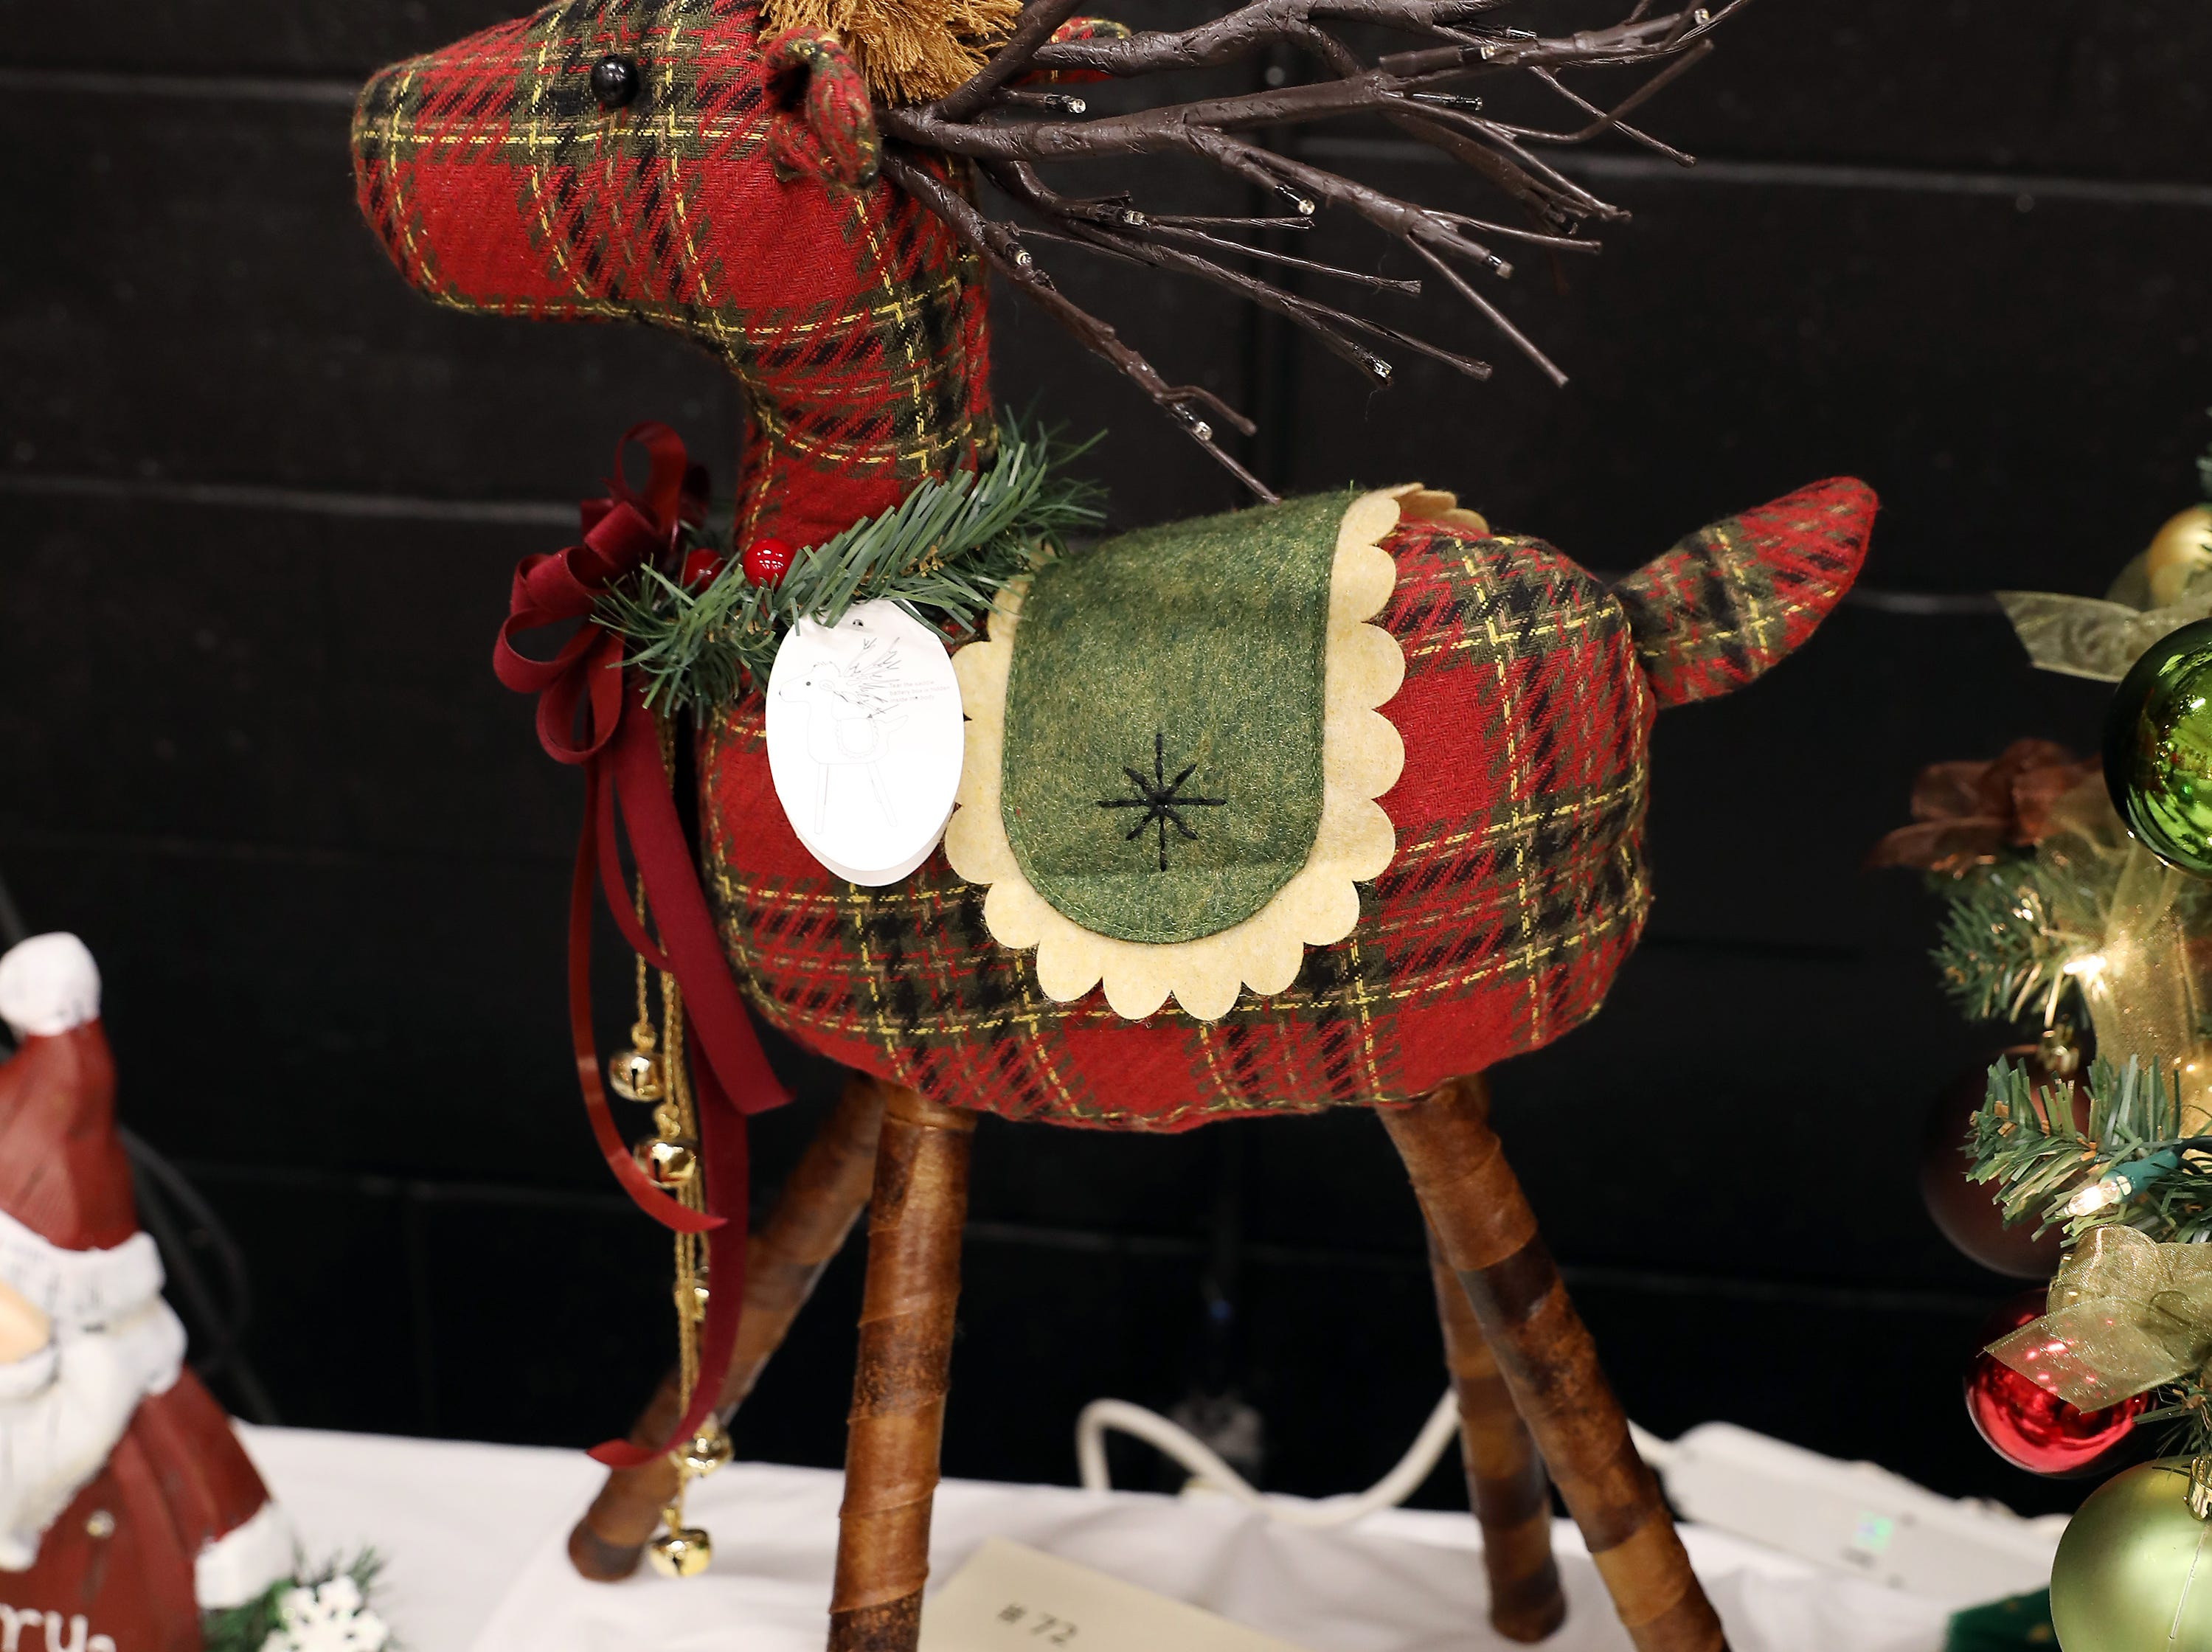 "72	11:30 AM	Stay and Play in Muskingum County	Other	A Country Reindeer	Add a rustic accent to your holidays with this lighted 30"" tall plaid reindeer.  It's antlers light up with warm white LED lights and it has a wreath around its neck.  Polyester and cotton with removal legs to make storing easy!		2 Lorena Sternwheeler public ride or twilight cruise tickets and 1 night stay at the Quality Inn and Suites of Zanesville"